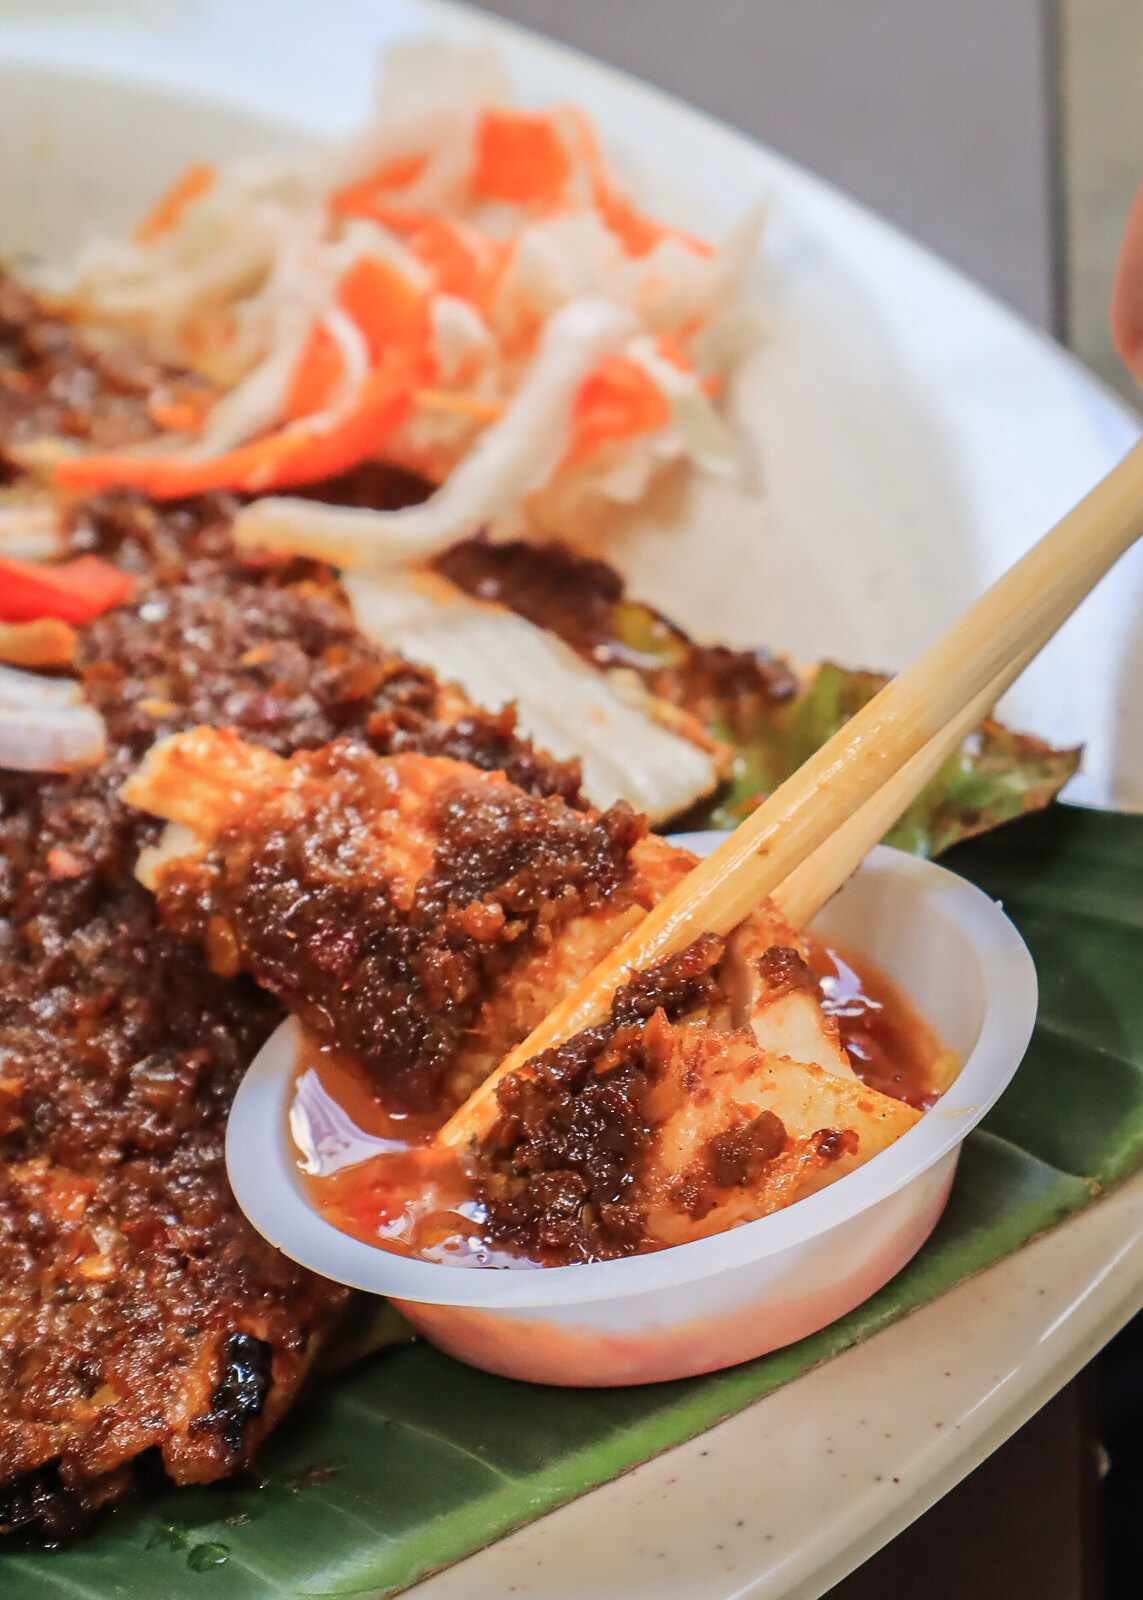 dipping stingray in chilli